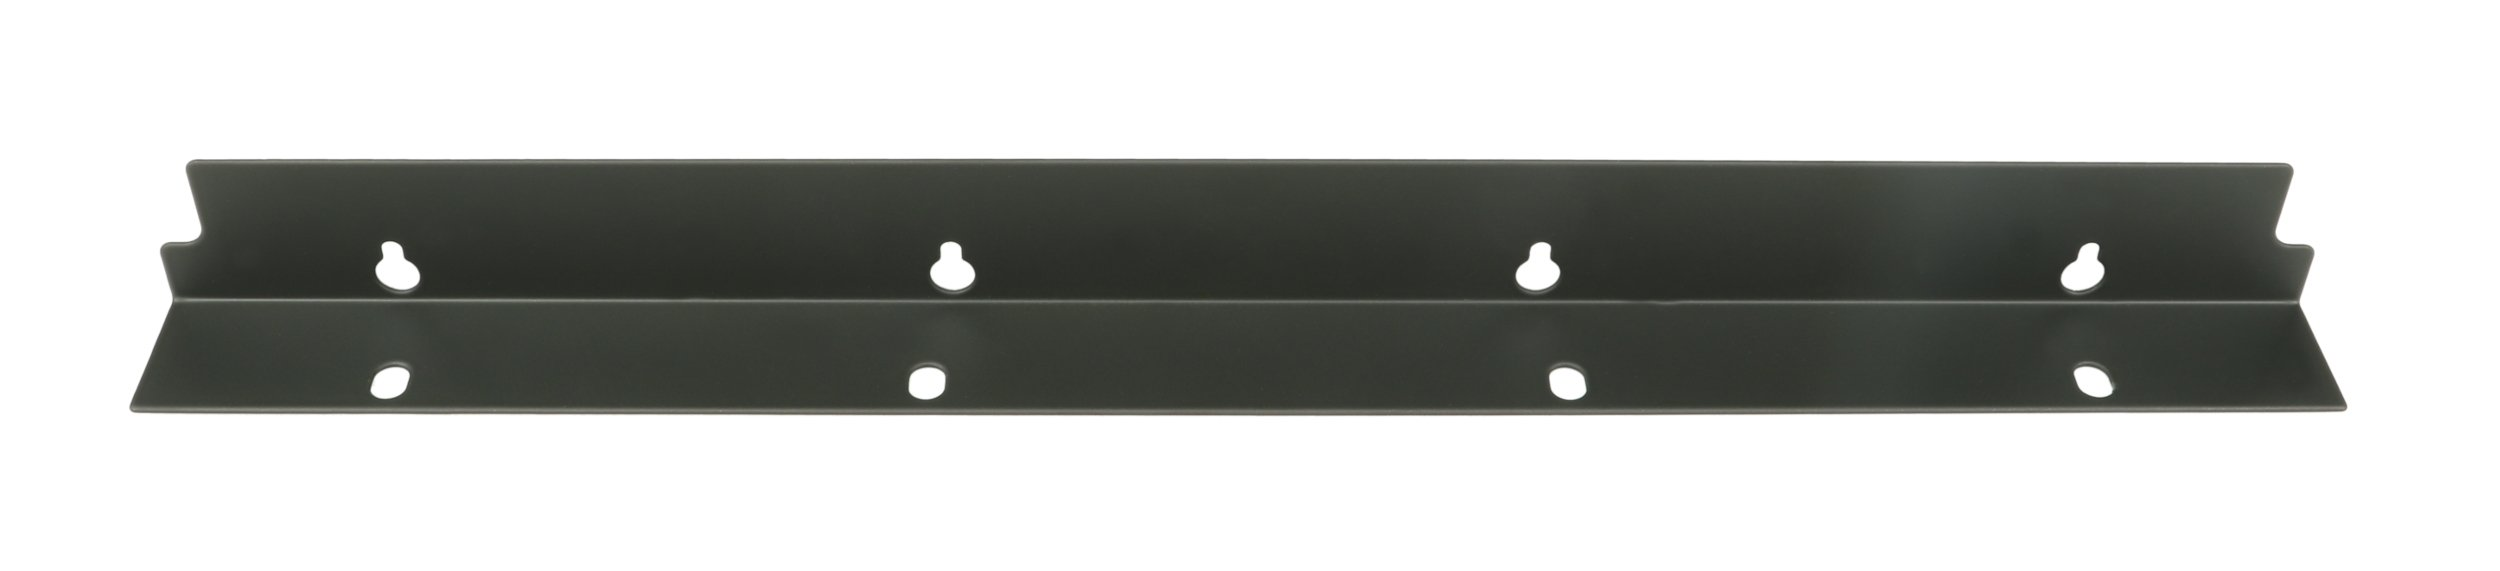 Rack Ear for MX2442 and XENXY 2442FX